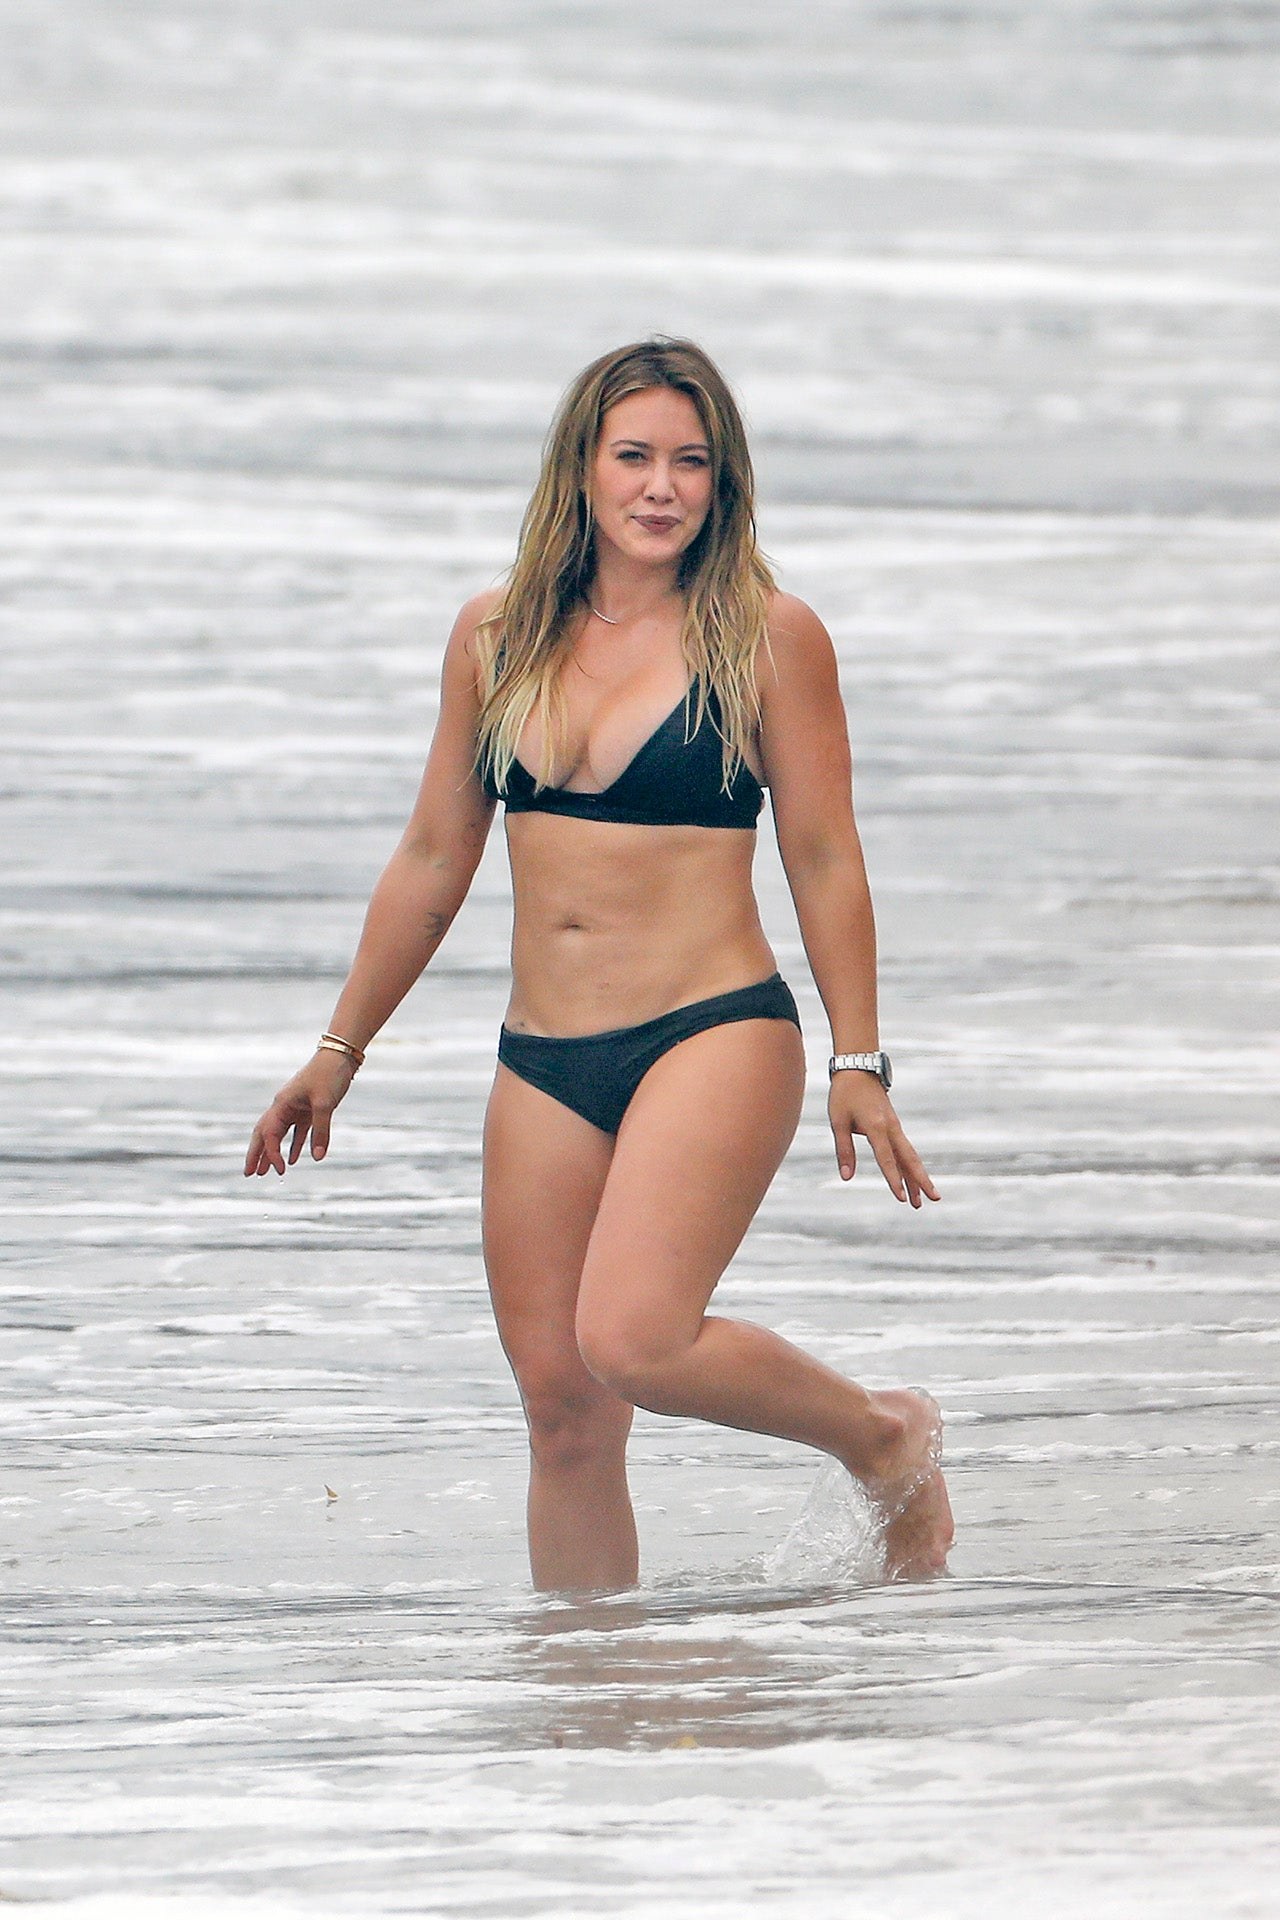 Hilary Duff Slays In A Black Bikini While Enjoying A Beach Day With Her Ex Mike Comrie And Son